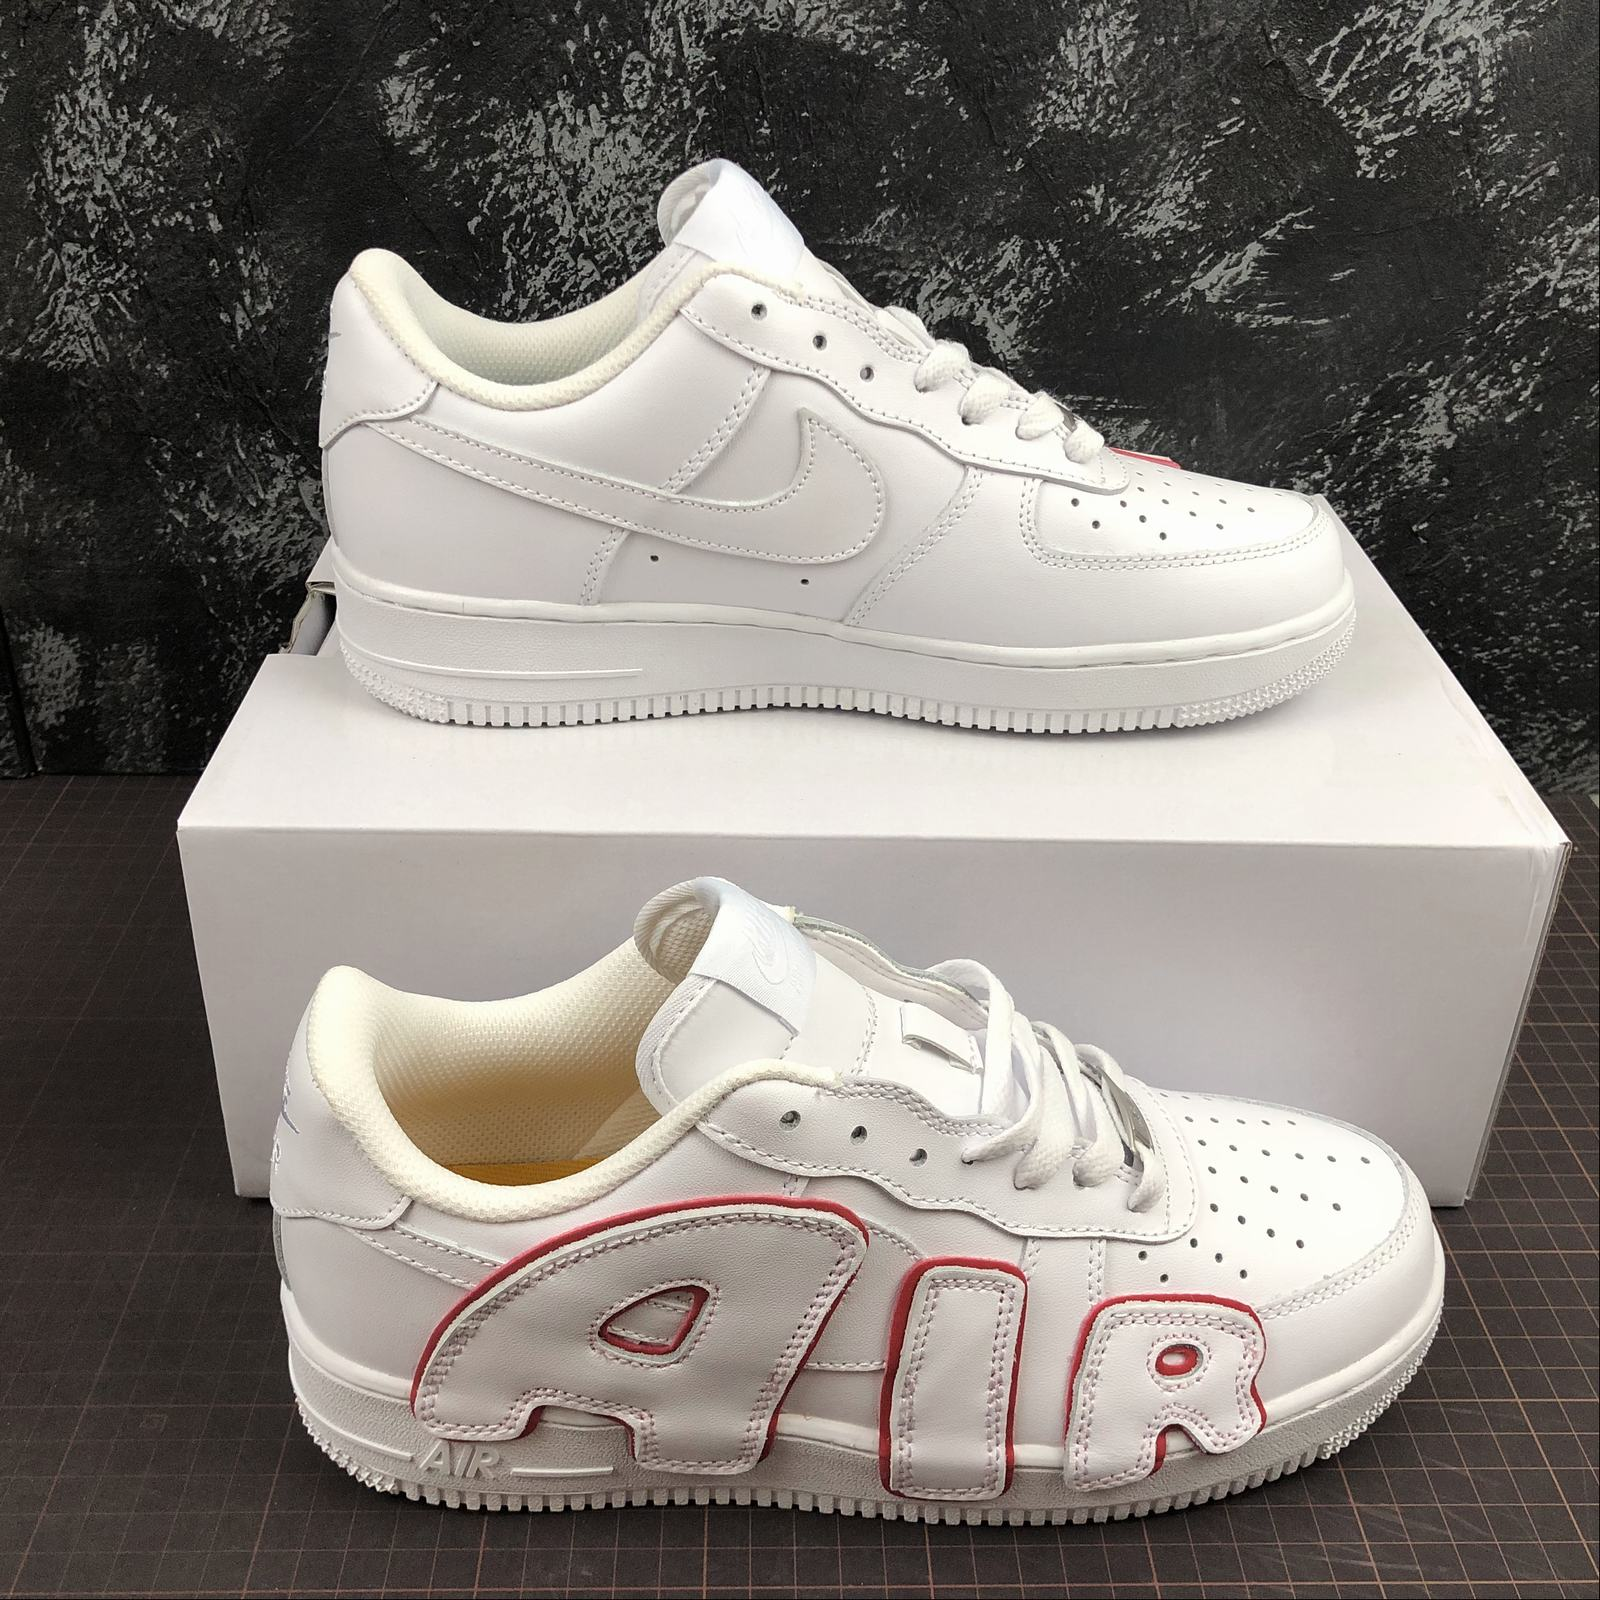 giay-sneaker-nike-air-force-1-low-air-315122-161-da-trang